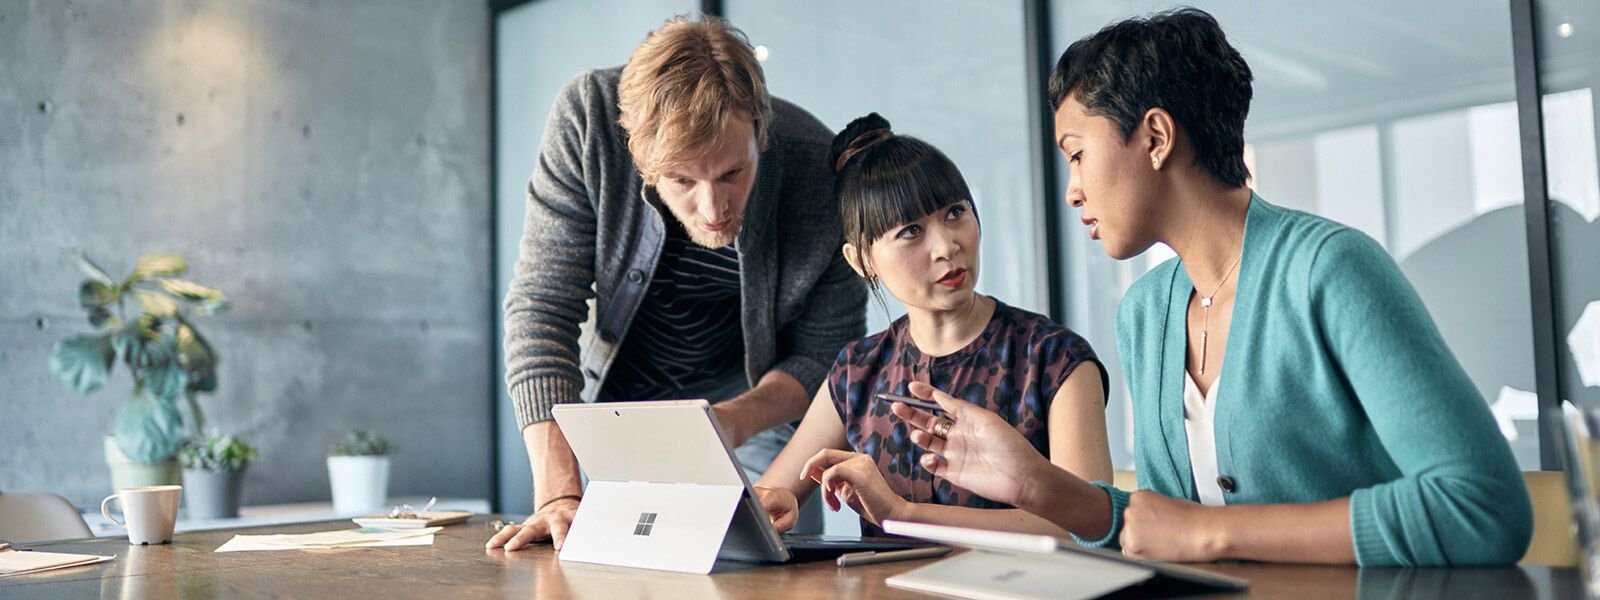 Three people are looking at a Surface Pro 4 in a conference room.